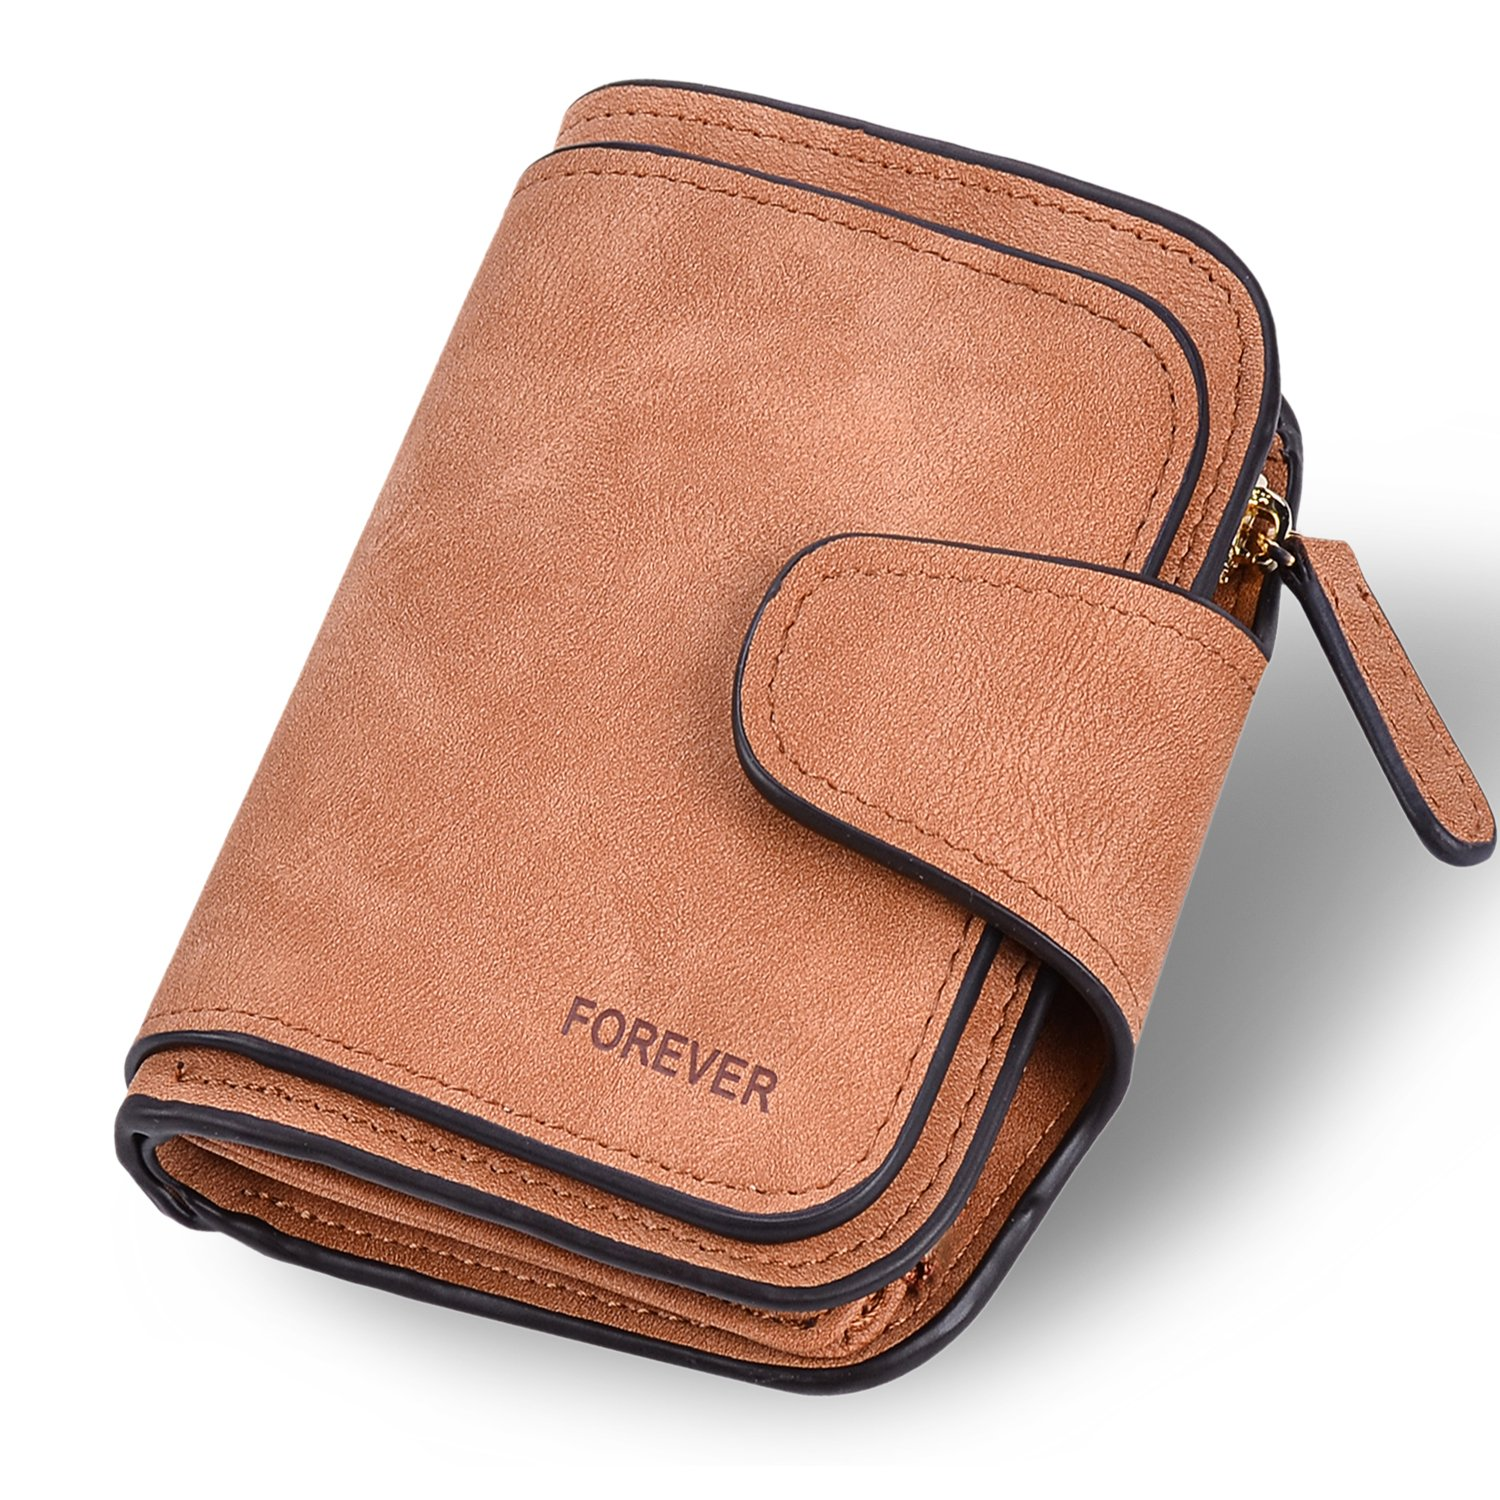 Wallet for Women Leather Clutch Short Purse Ladies Credit Card Holder Organizer with Zip Pocket - Brown by EUGO (Image #1)